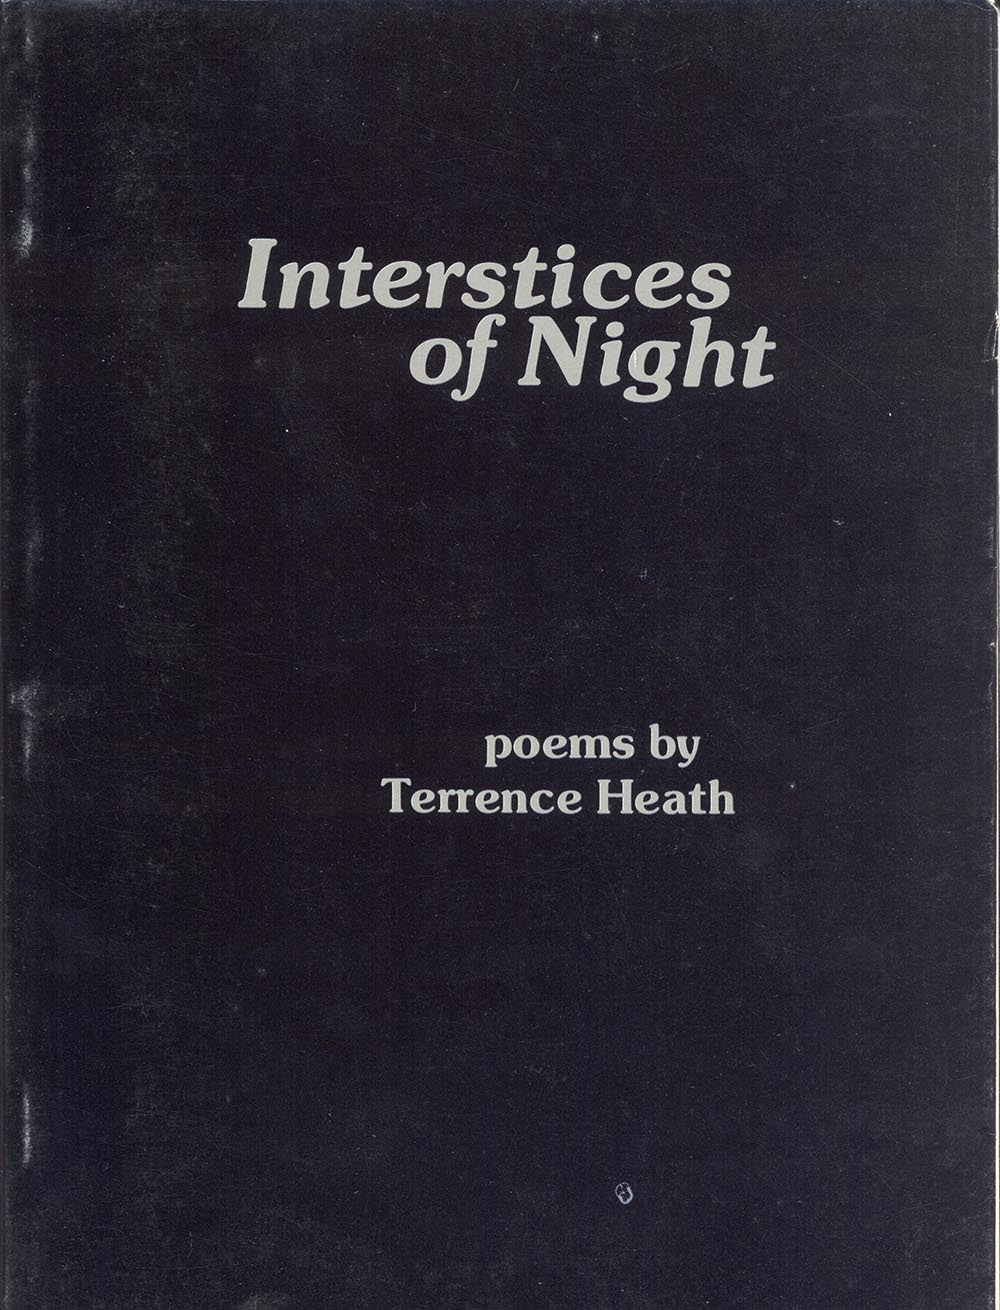 Interstices of Night by Terrance HEath